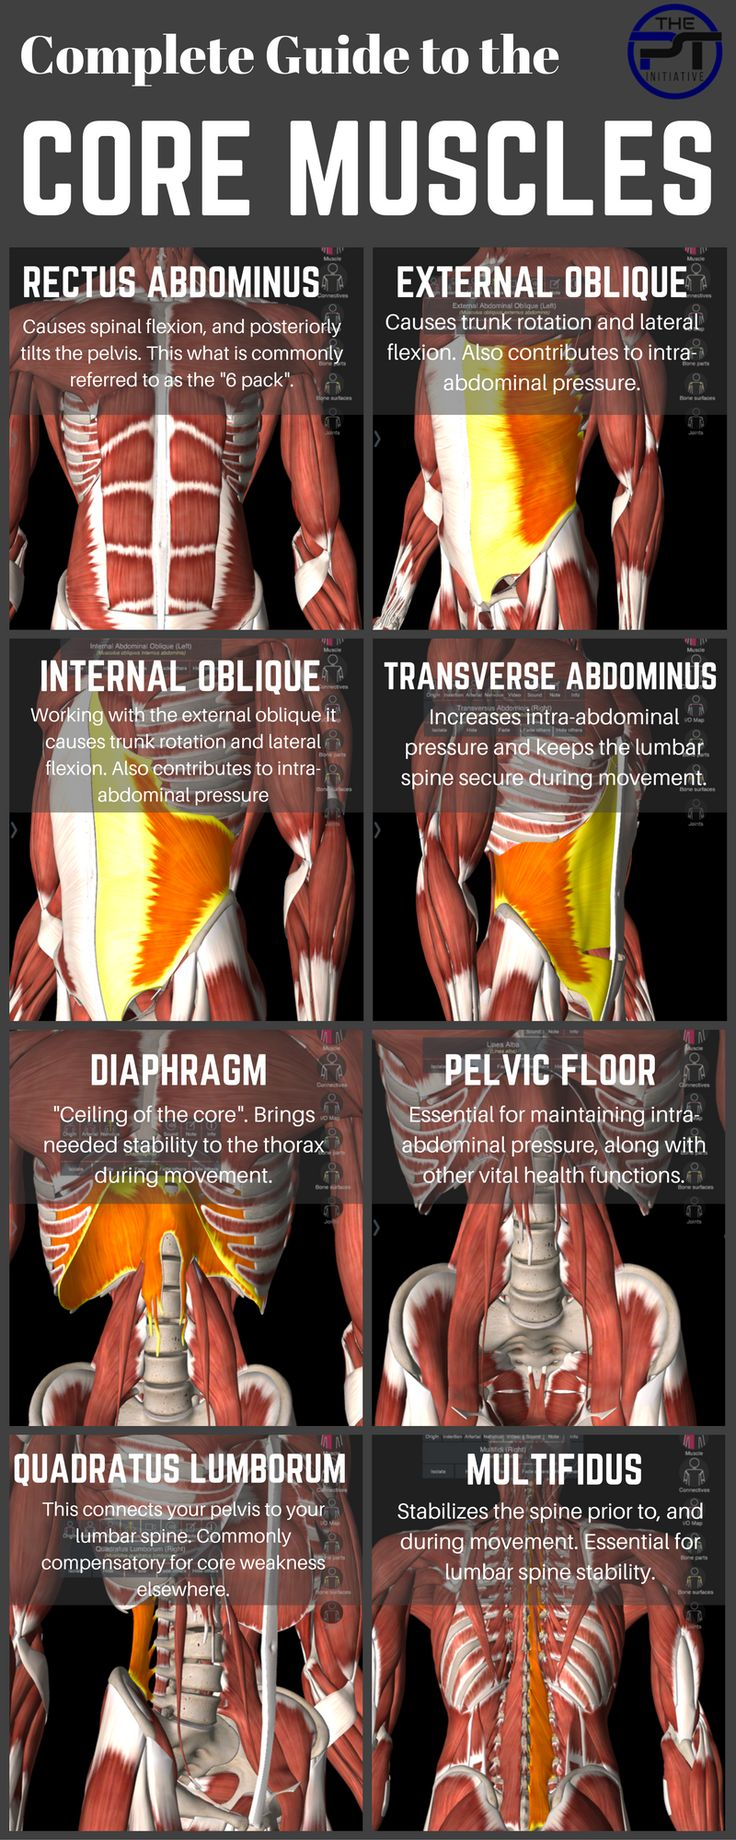 Find Out What Muscles ACTUALLY Make Up Your CORE and How To Train Them!